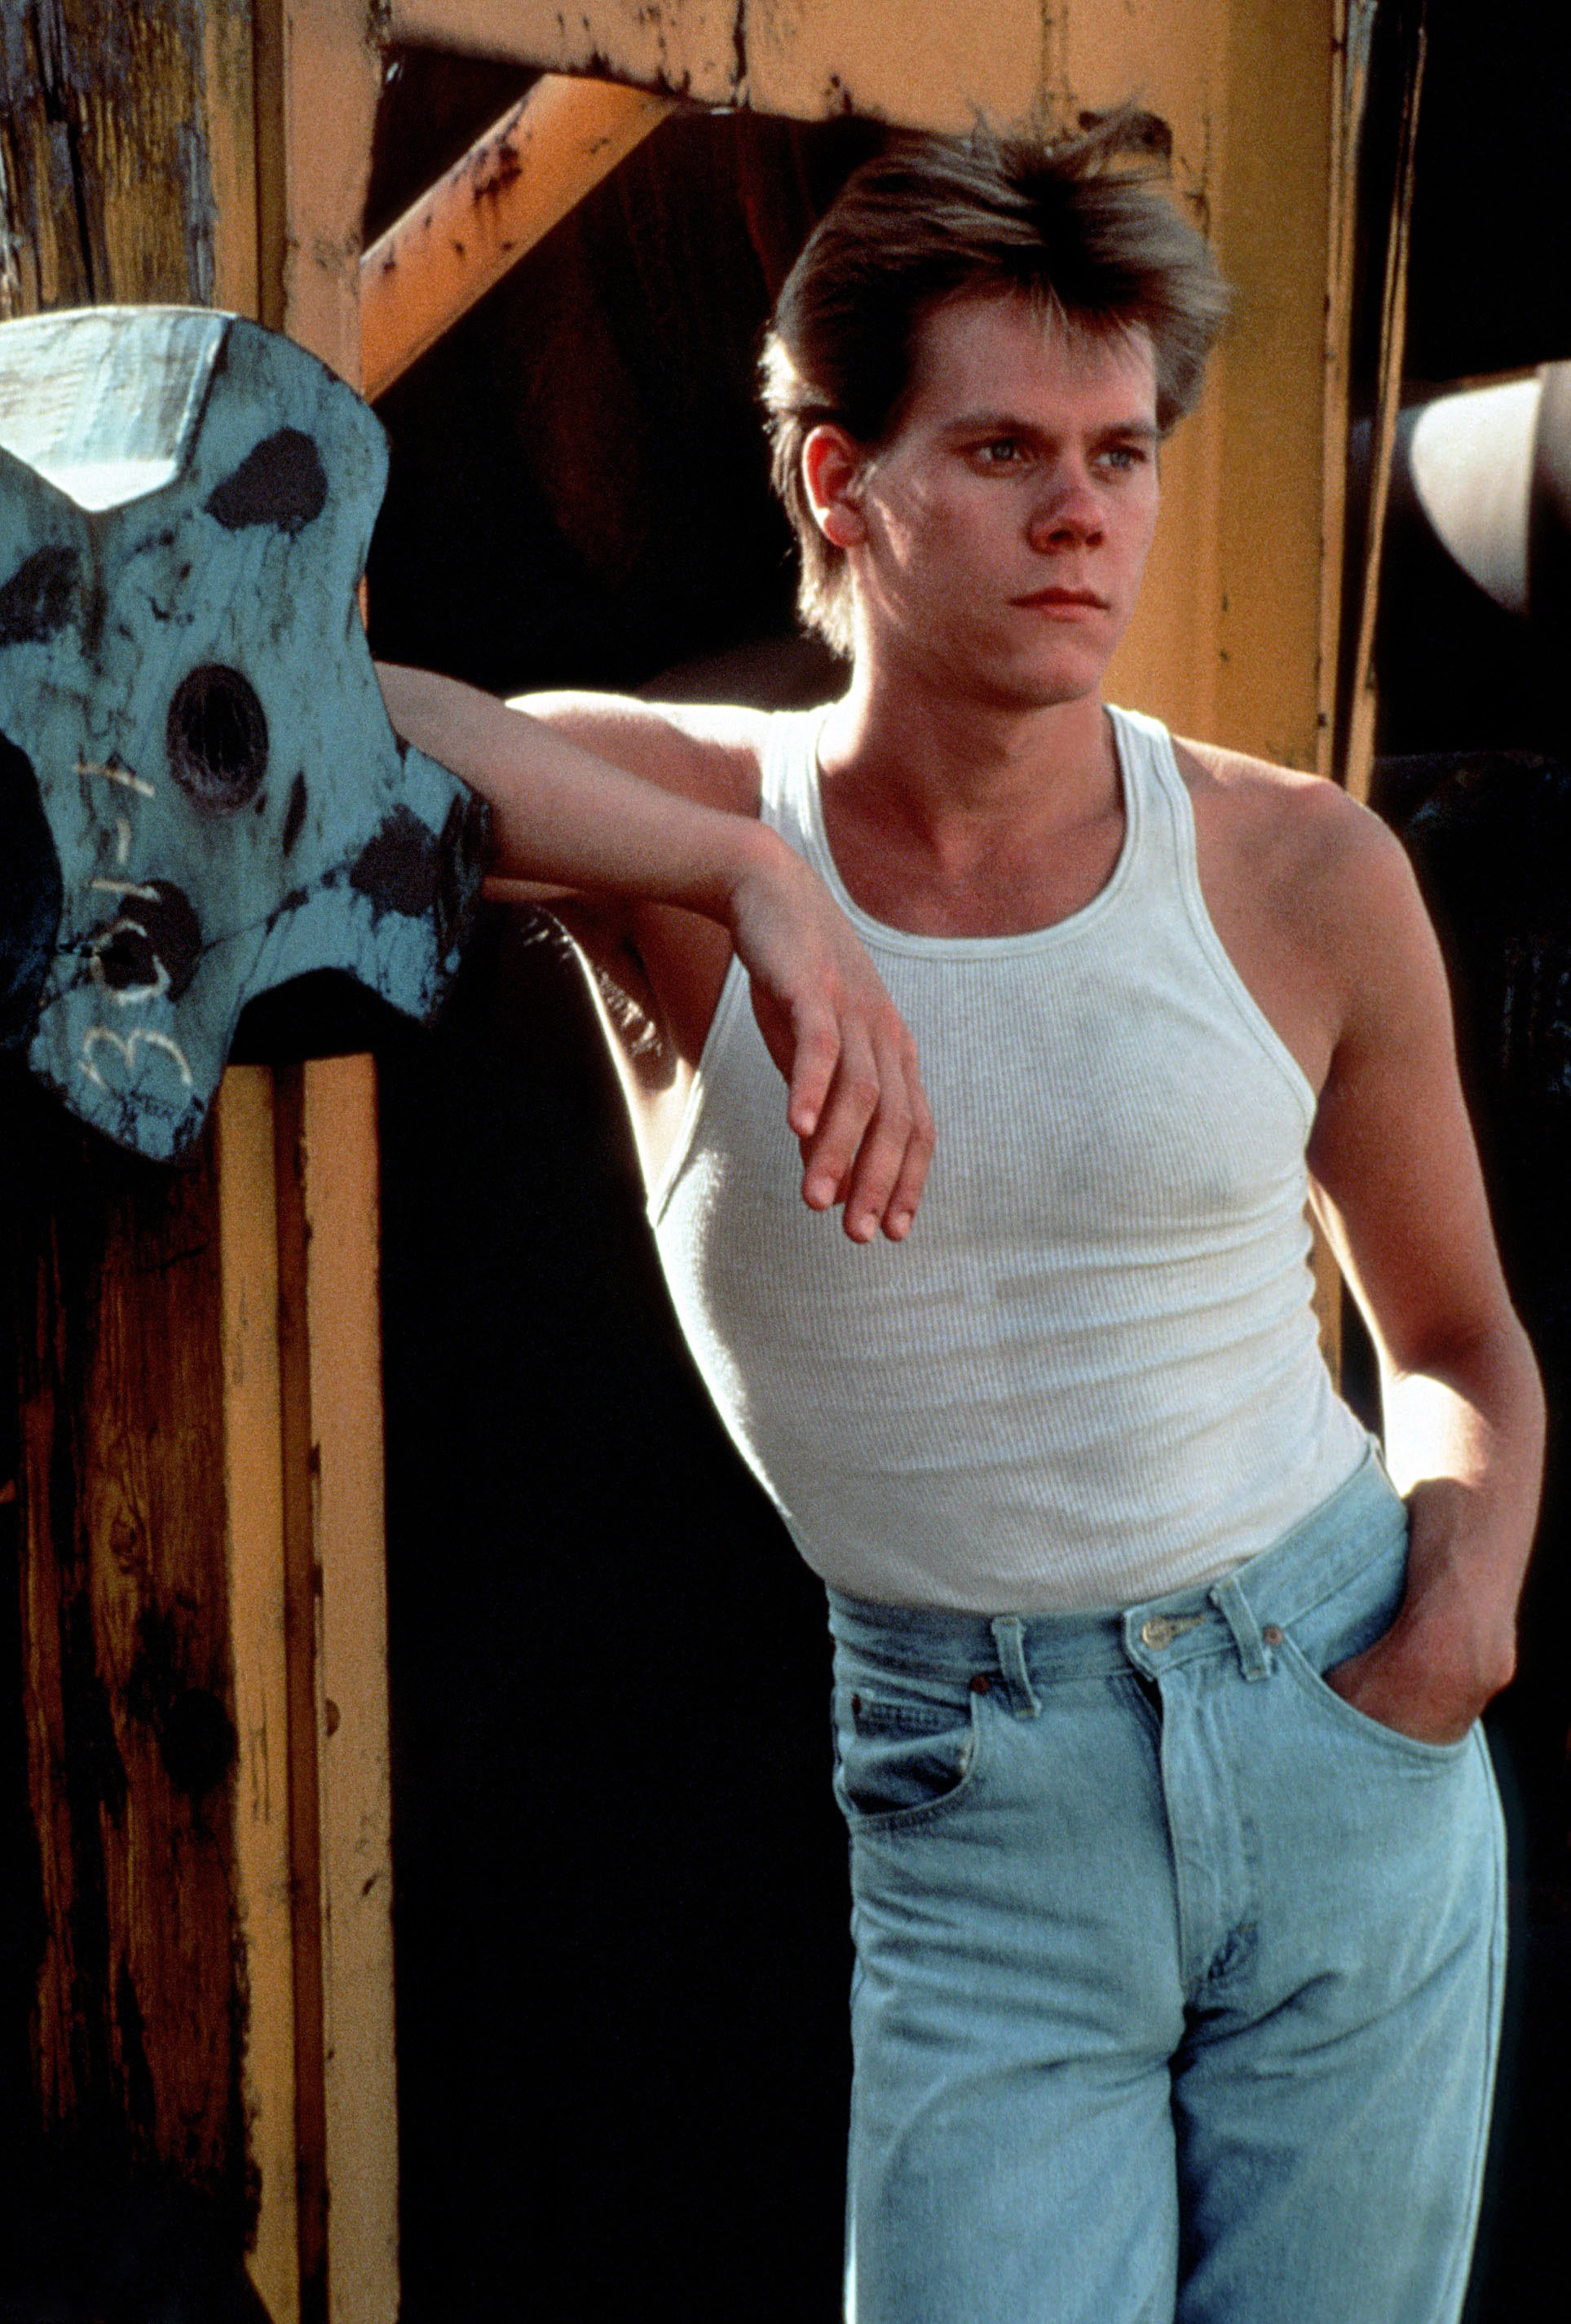 The 1980s: A footloose Kevin Bacon dances in his...